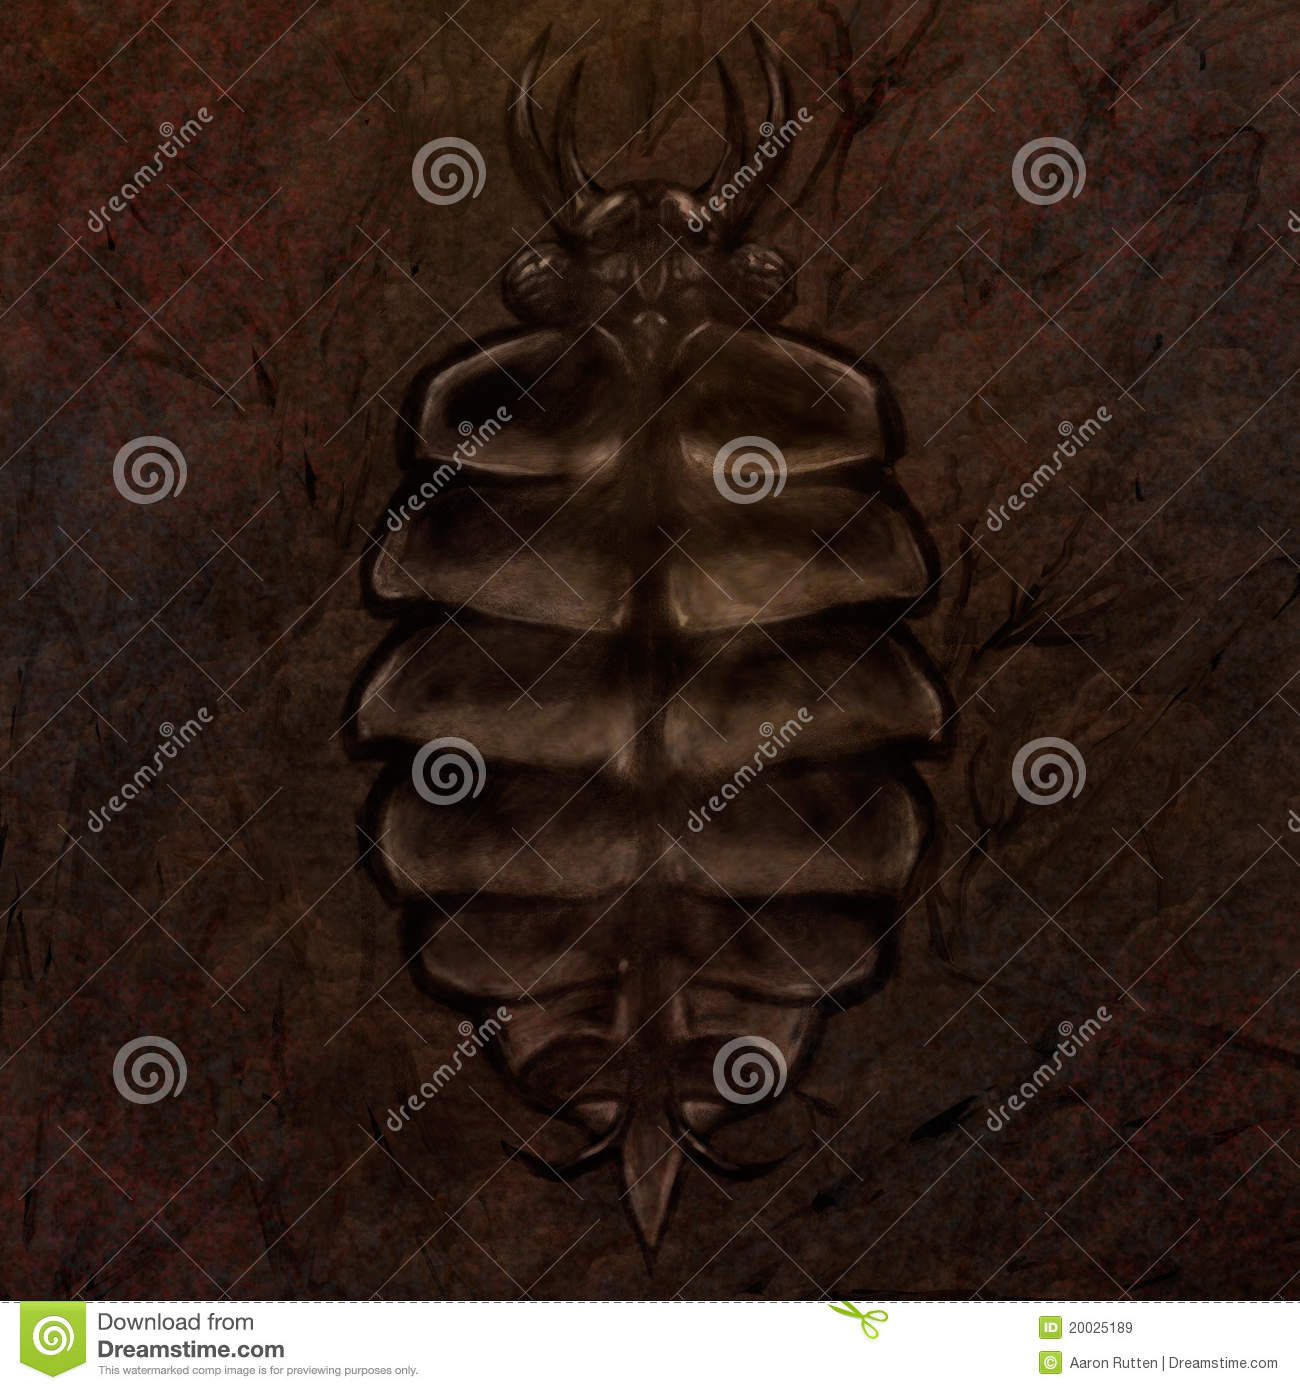 Trilobite Fossil IllustrationTrilobite Illustration